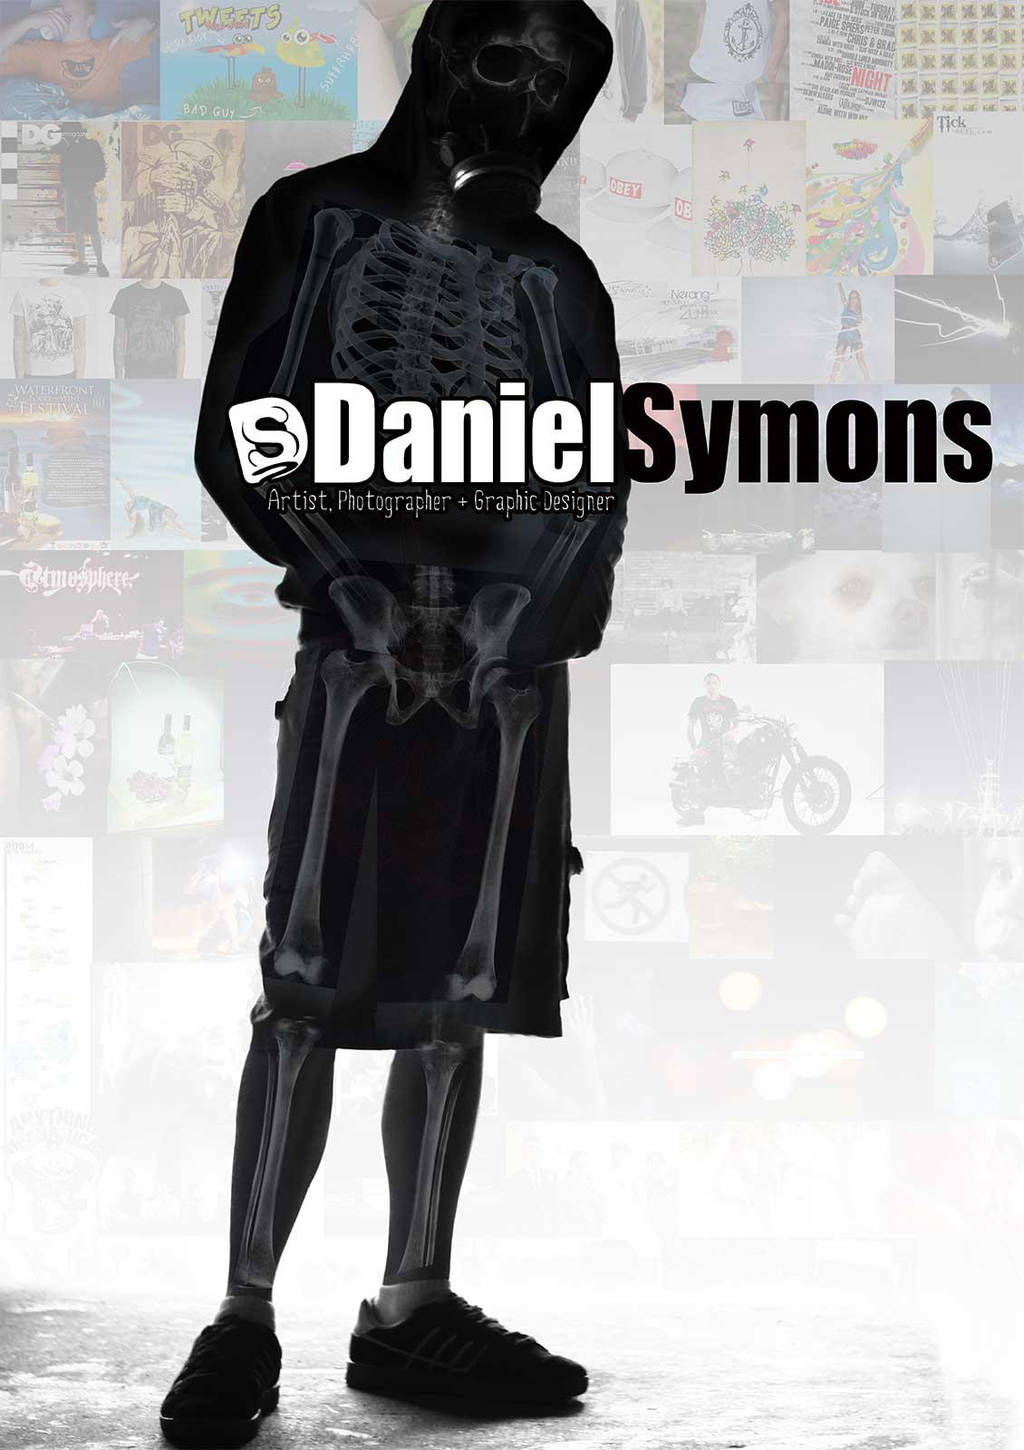 symons-photography's Profile Picture